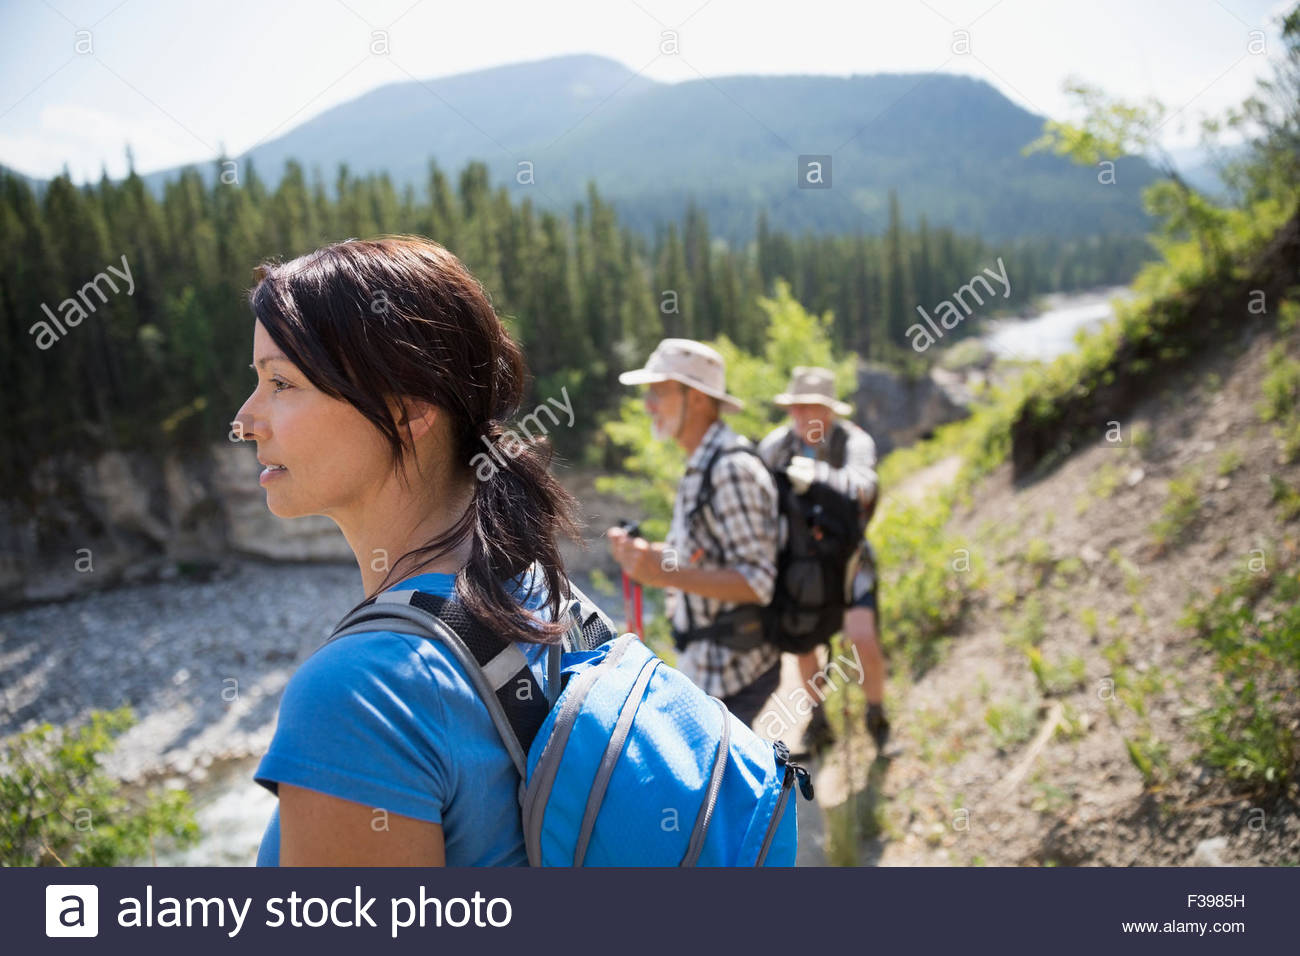 Hikers looking at view - Stock Image